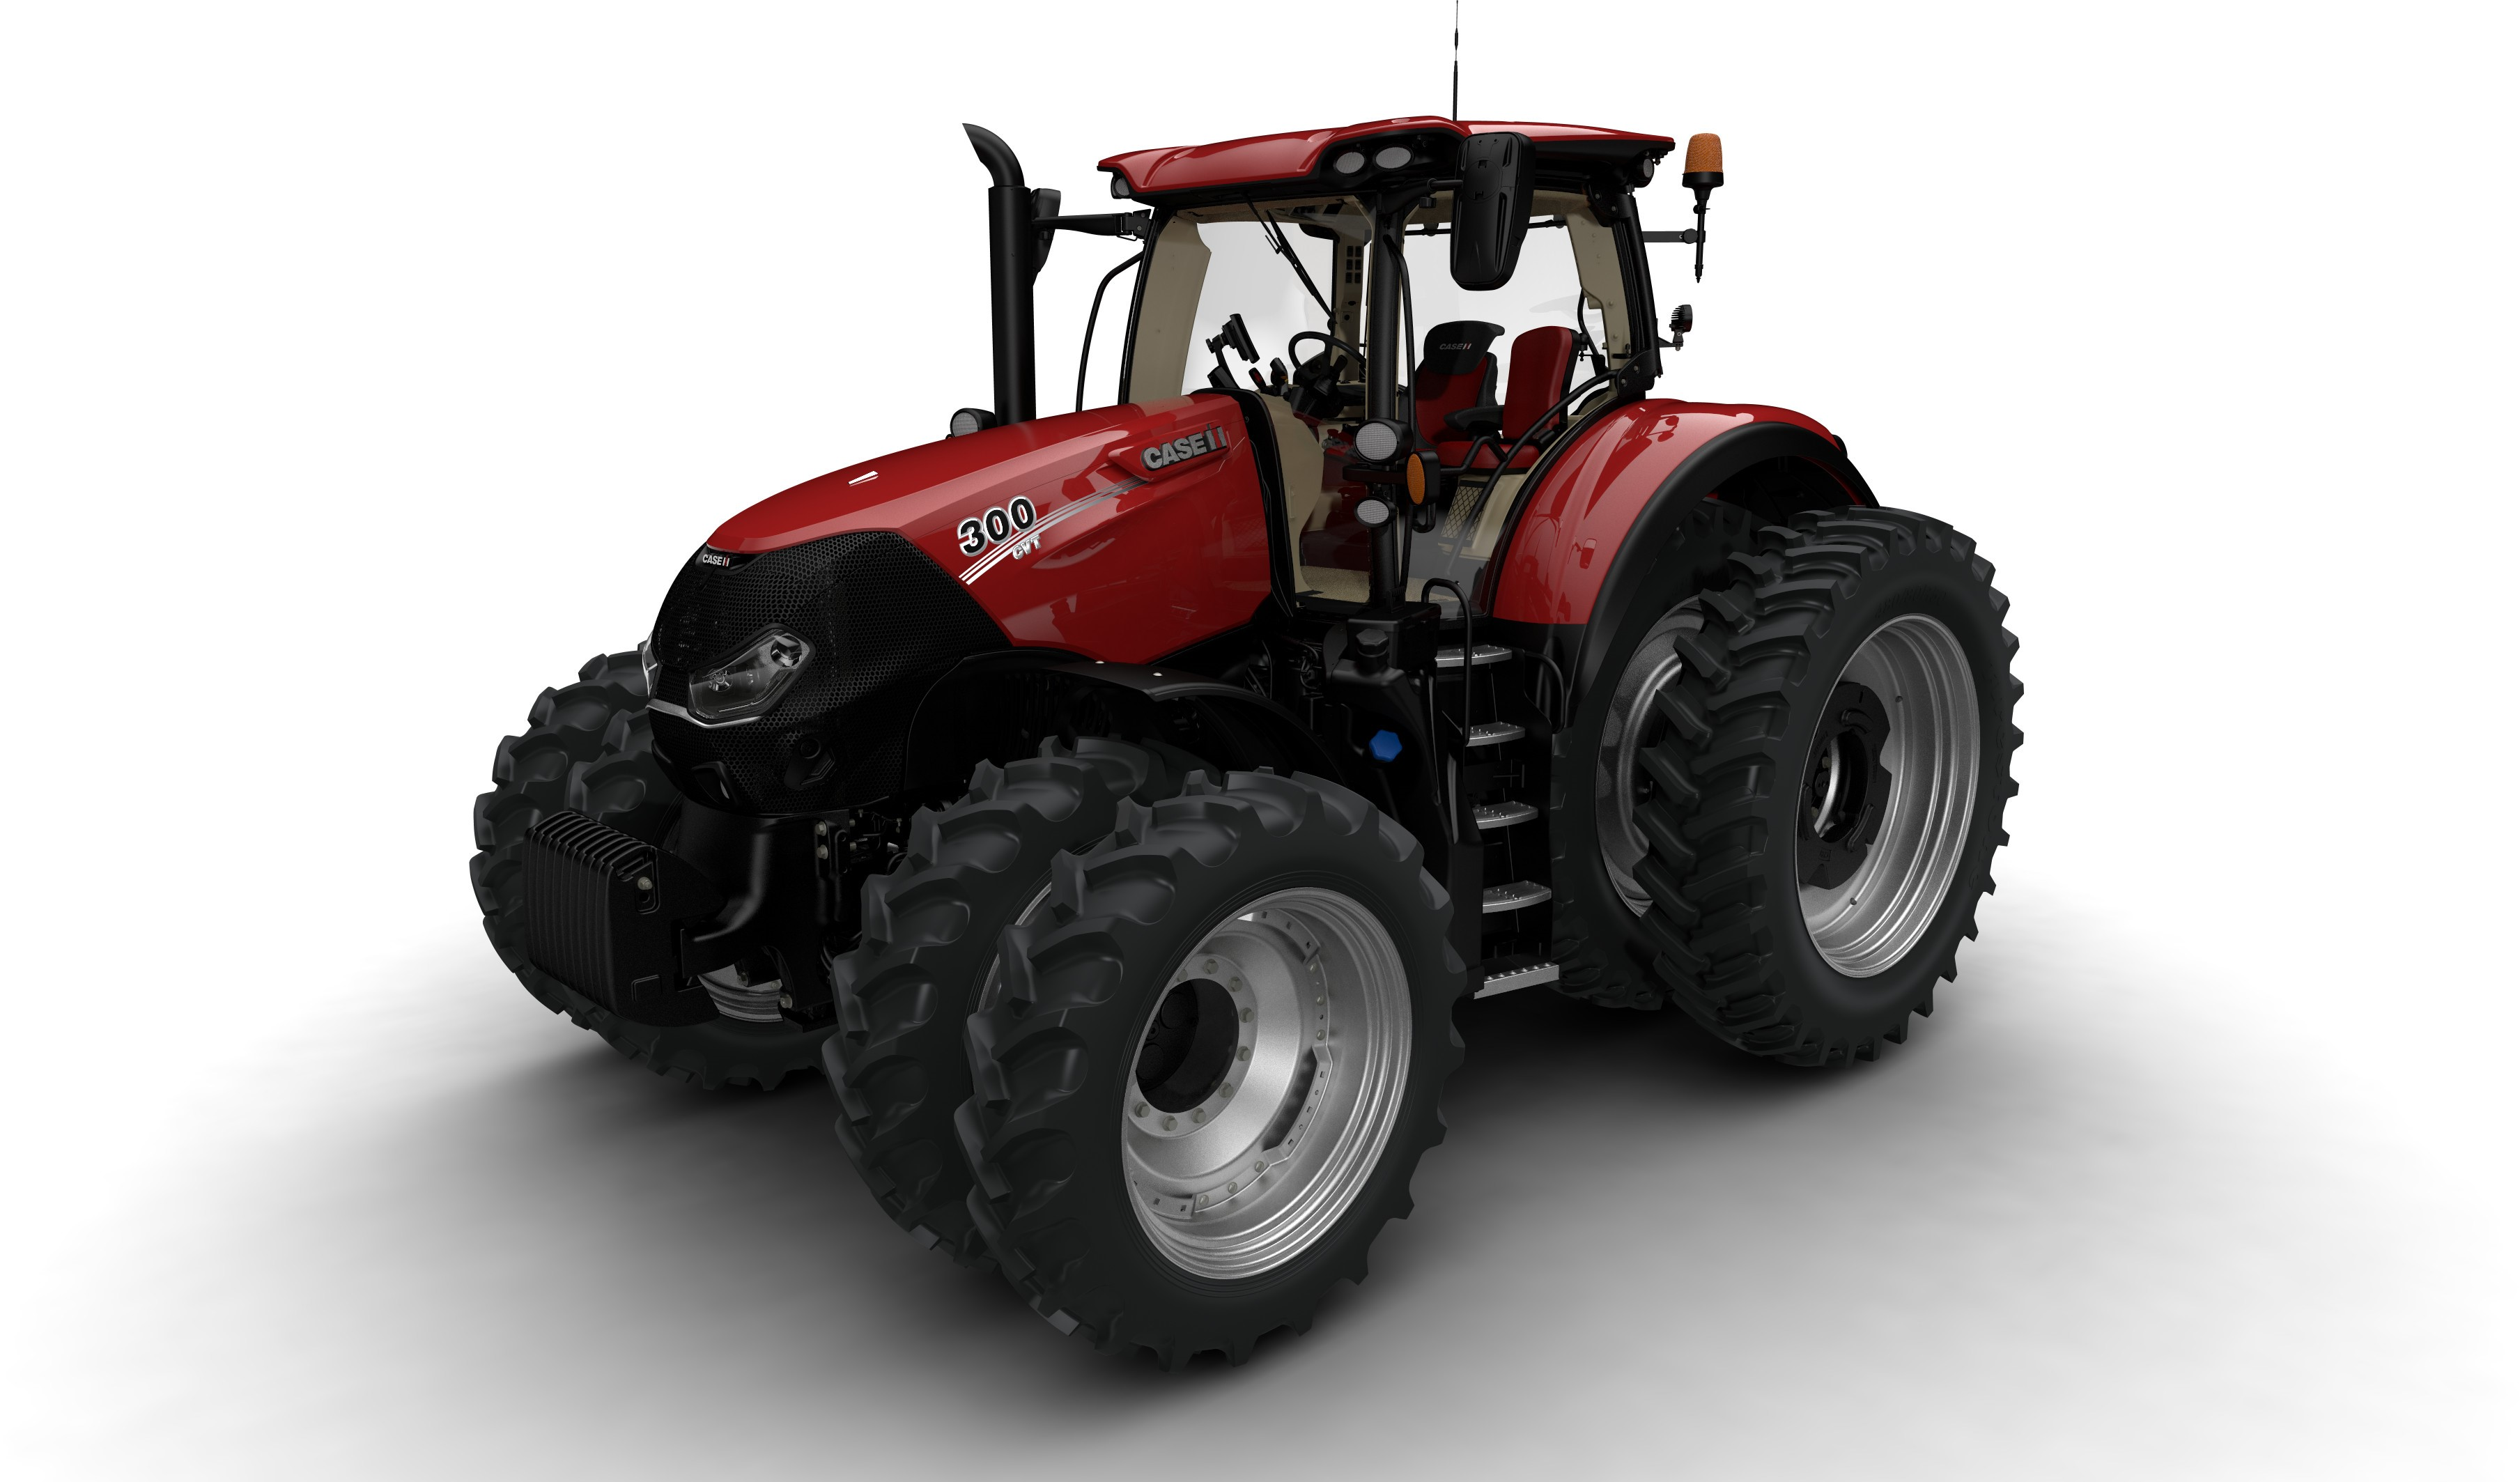 Case Tracked Tractors : Case ih new optum tractor series introduced farms